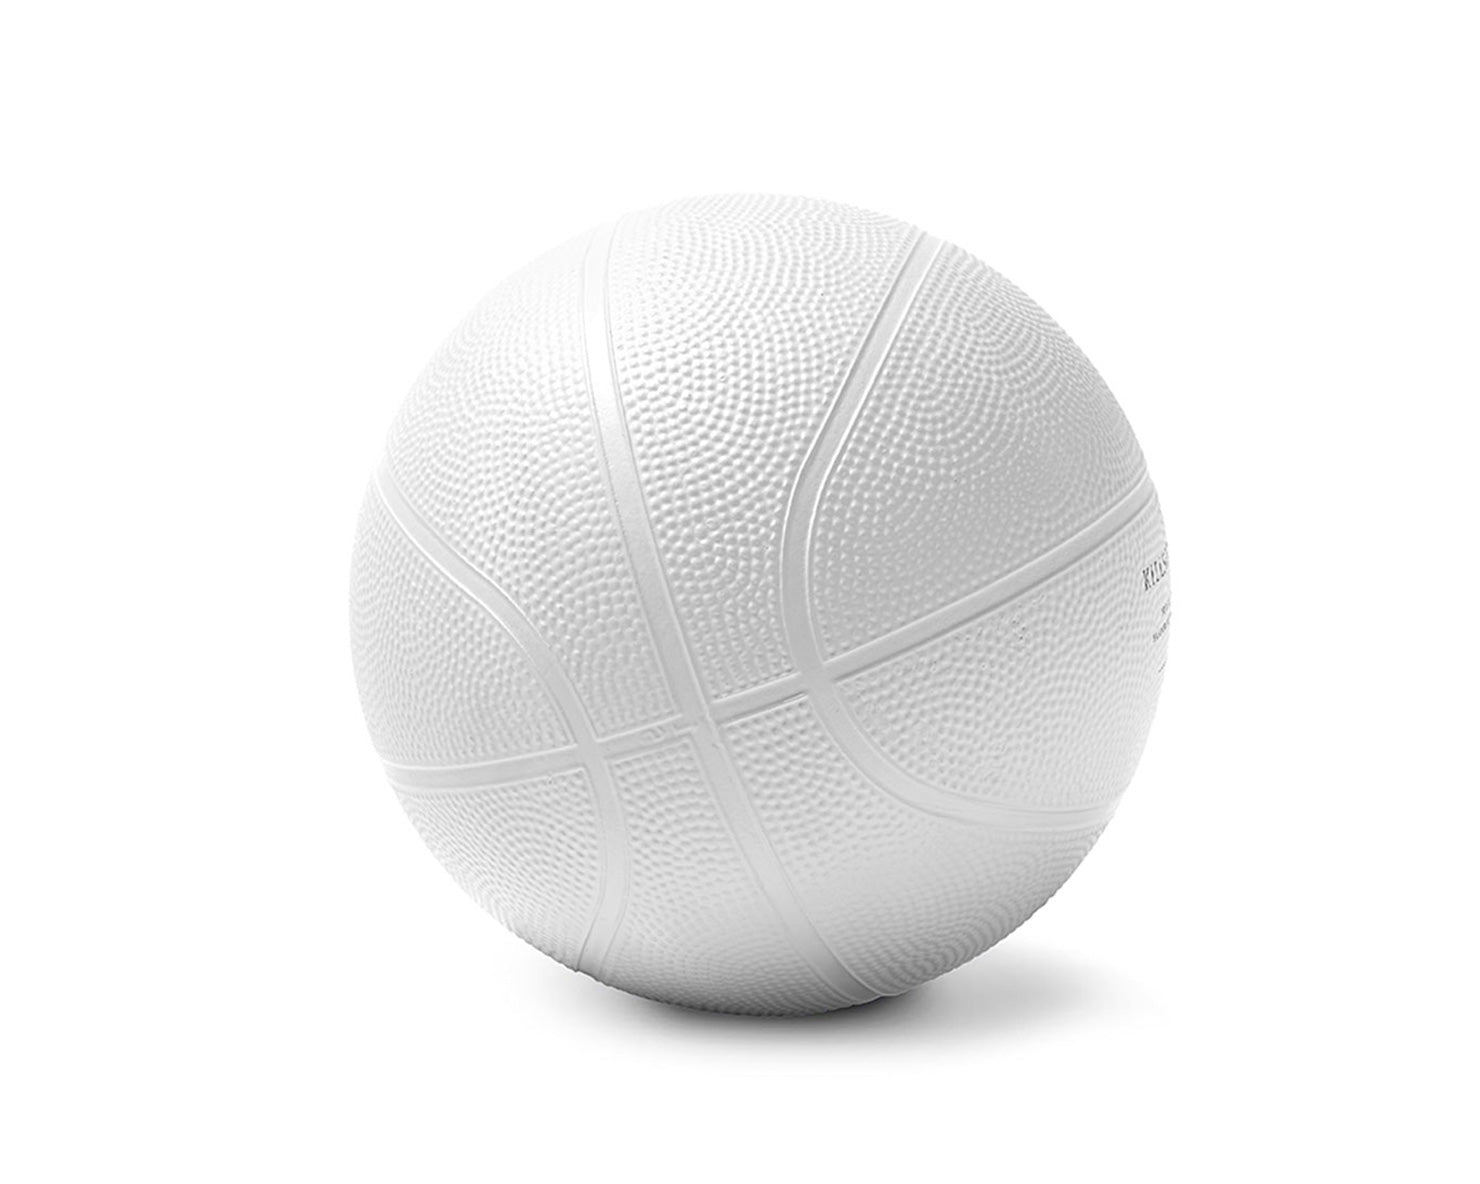 INDOOR MINI BASKETBALL | KILLSPENCER® - Grey Rubber